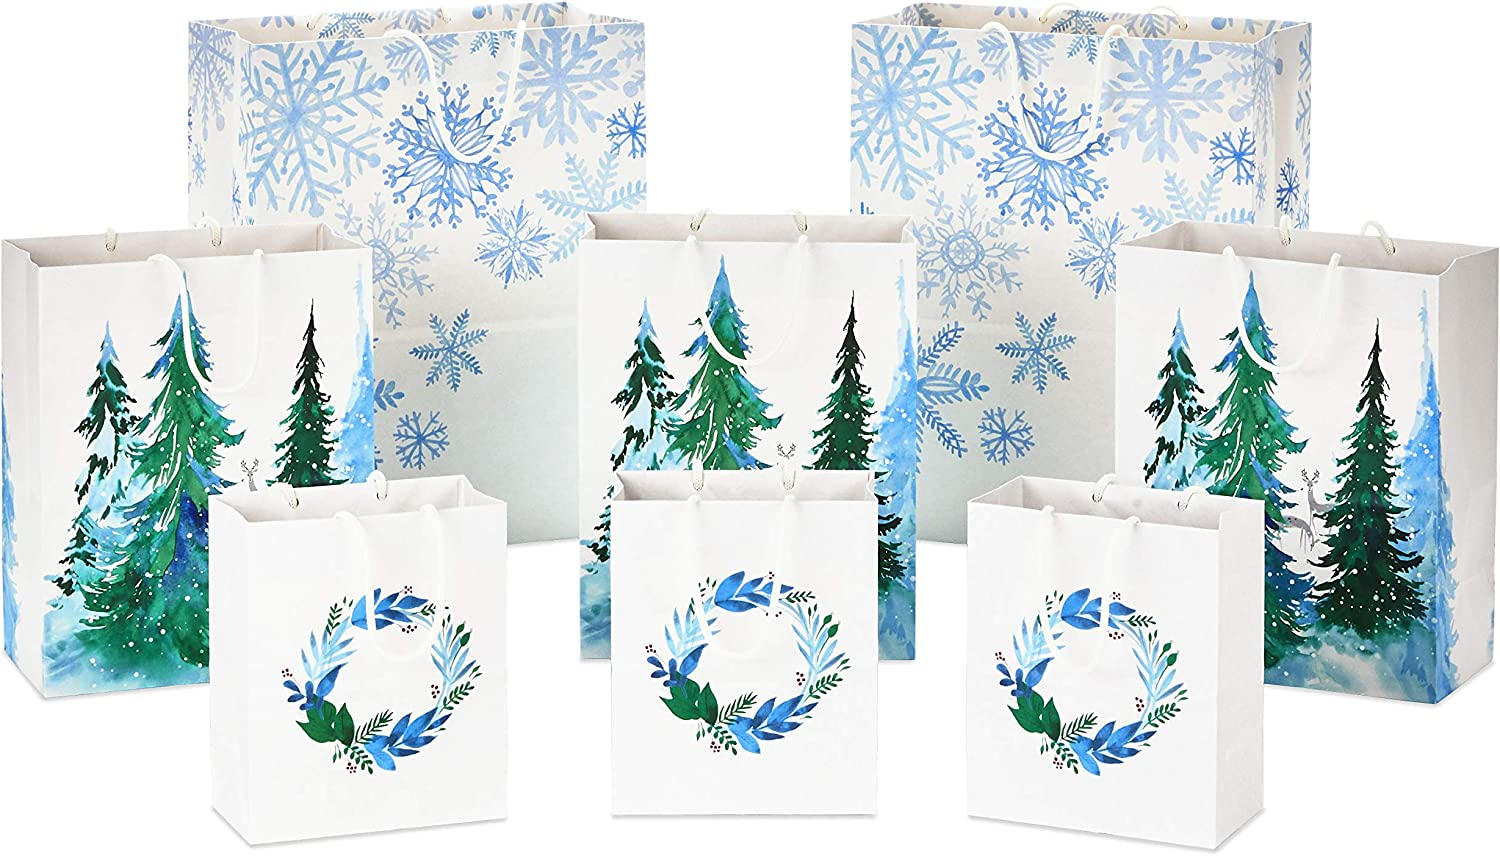 Weddings Recyclable White with Wreaths Hanukkah 8 Bags: 3 Small 6, 3 Medium 9, 2 Large 13 Birthdays Snowflakes and Trees for Christmas Hallmark Sustainable Holiday Gift Bags